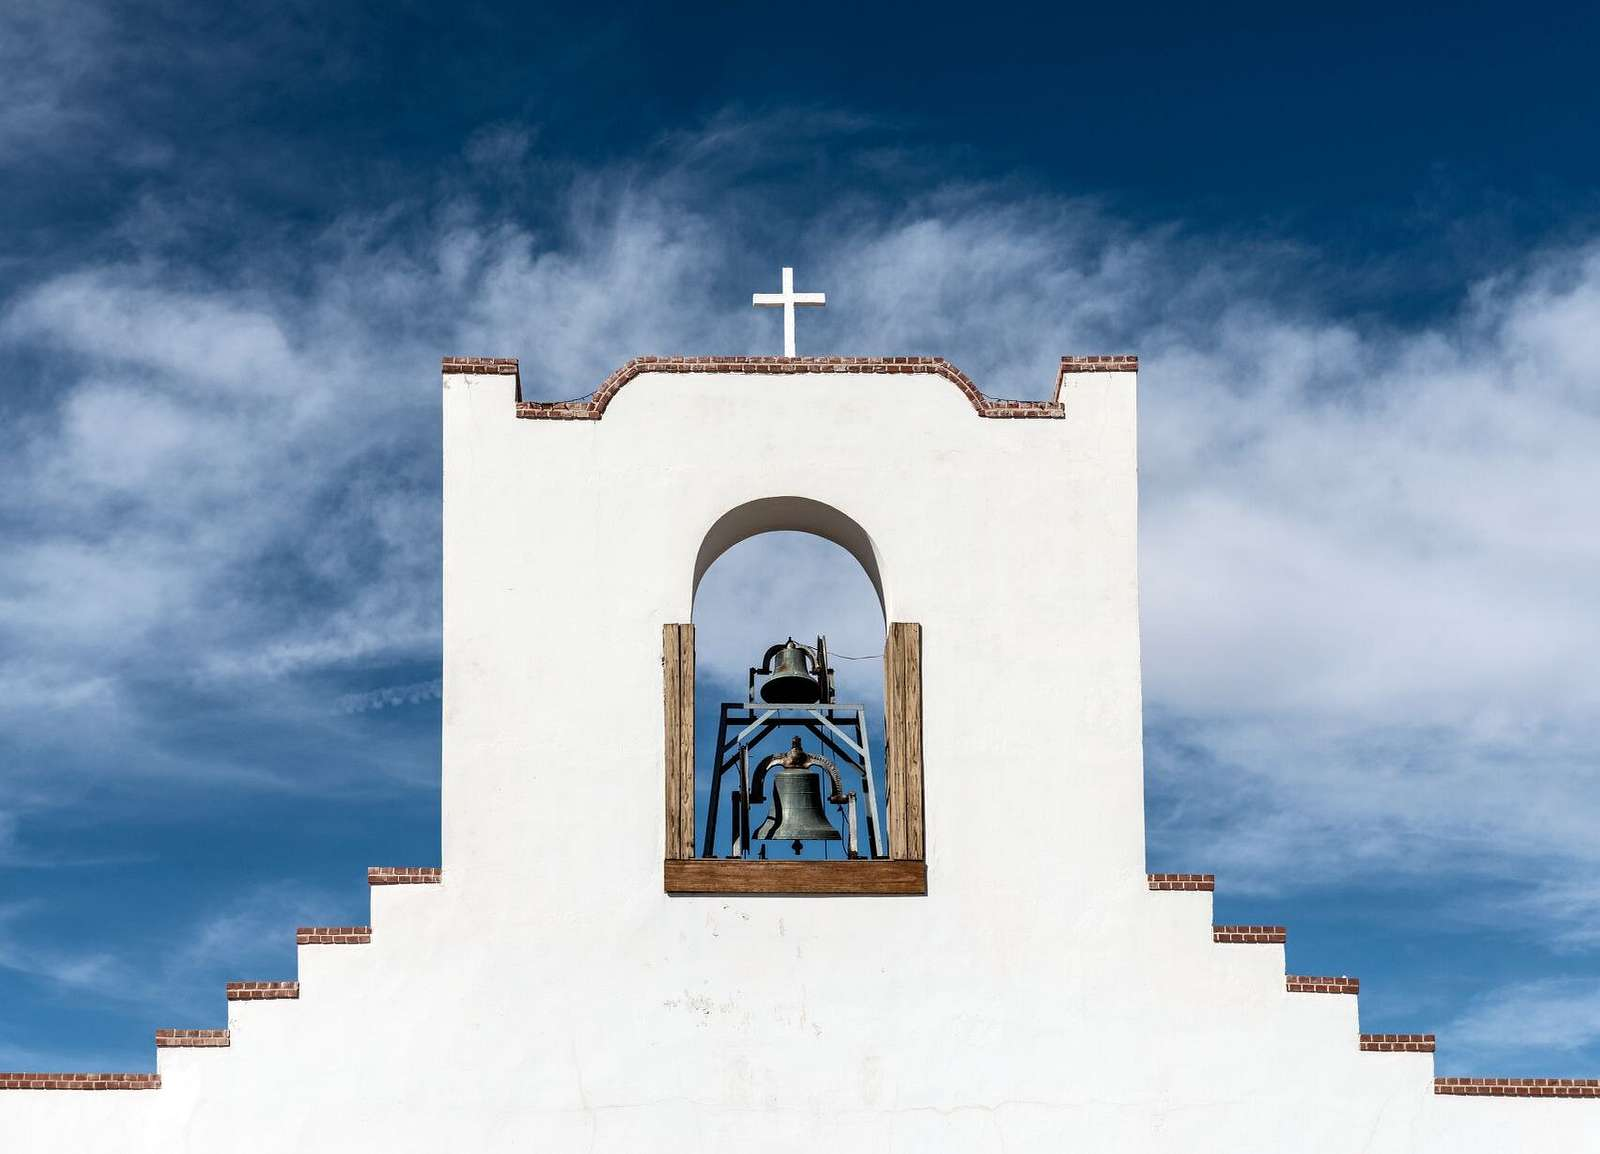 The Nuestra Senora de la Concepcion del Socorro, or Socorro Mission, was founded in 1682 by the Franciscan order to serve displaced American Indians (the Piro, Tano and Jemez) from New Mexico, who fled during the Pueblo Revolt. El Paso, Texas